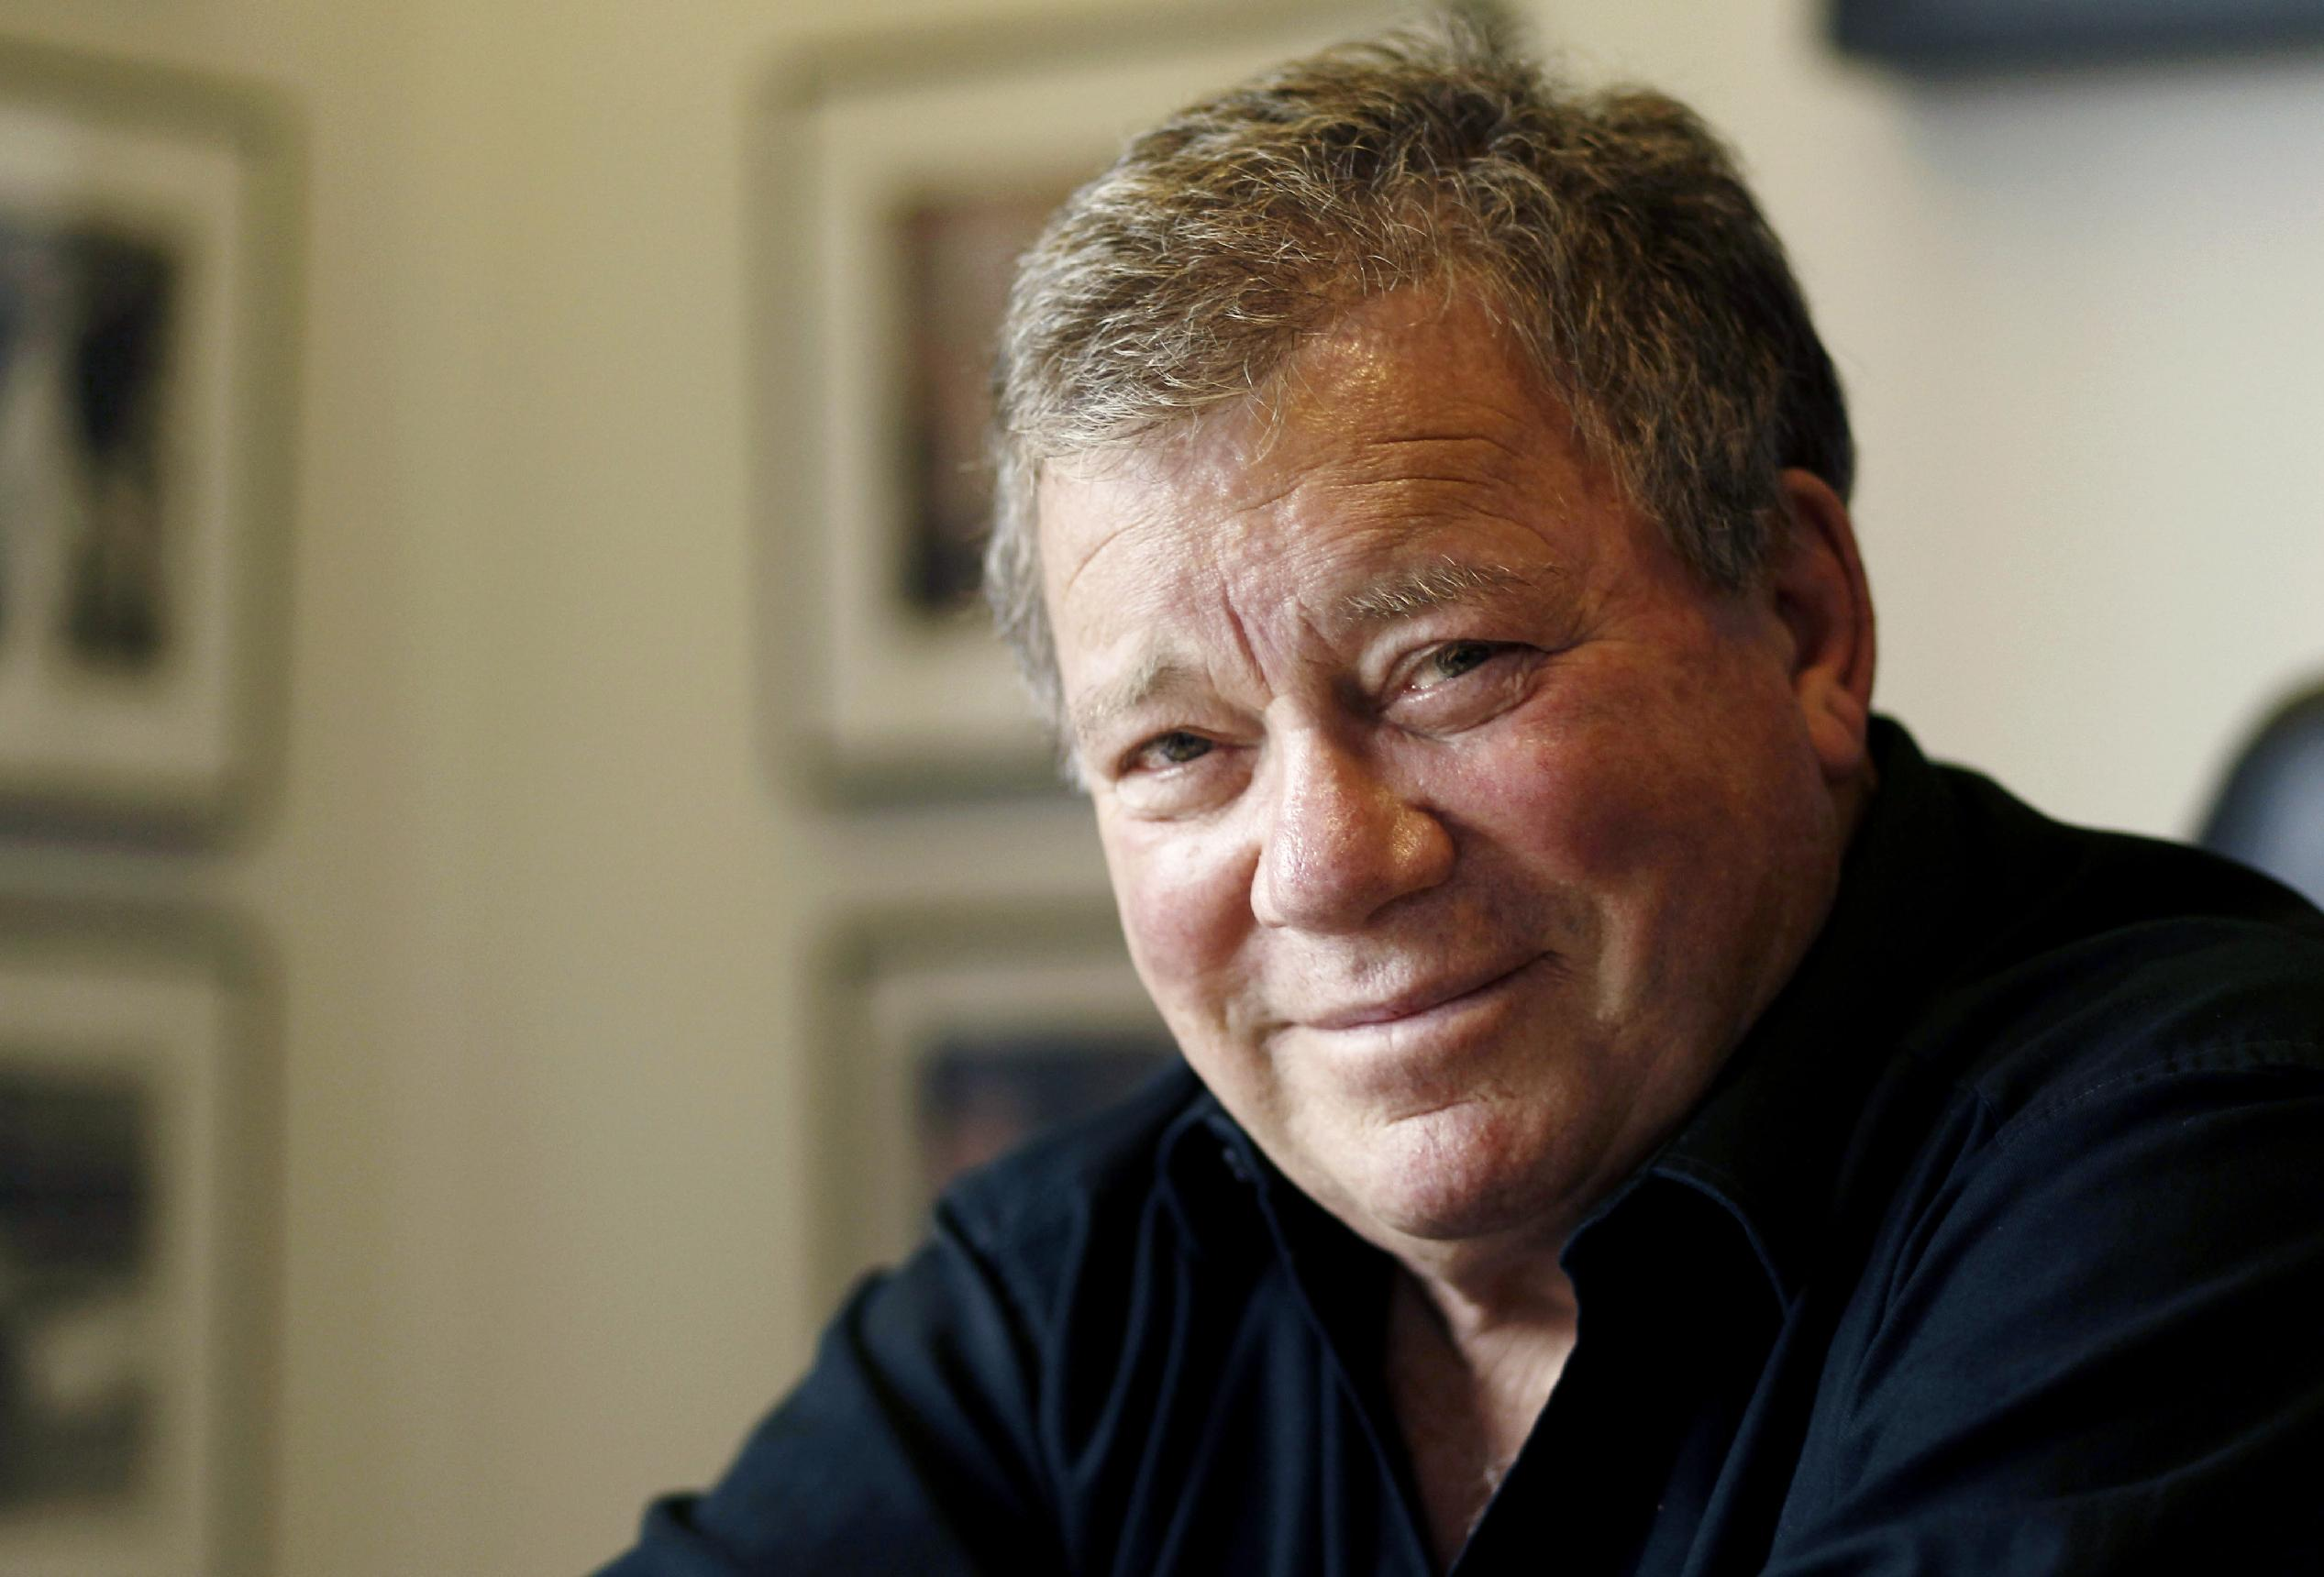 William Shatner in Los Angeles. (AP Photo/Matt Sayles)